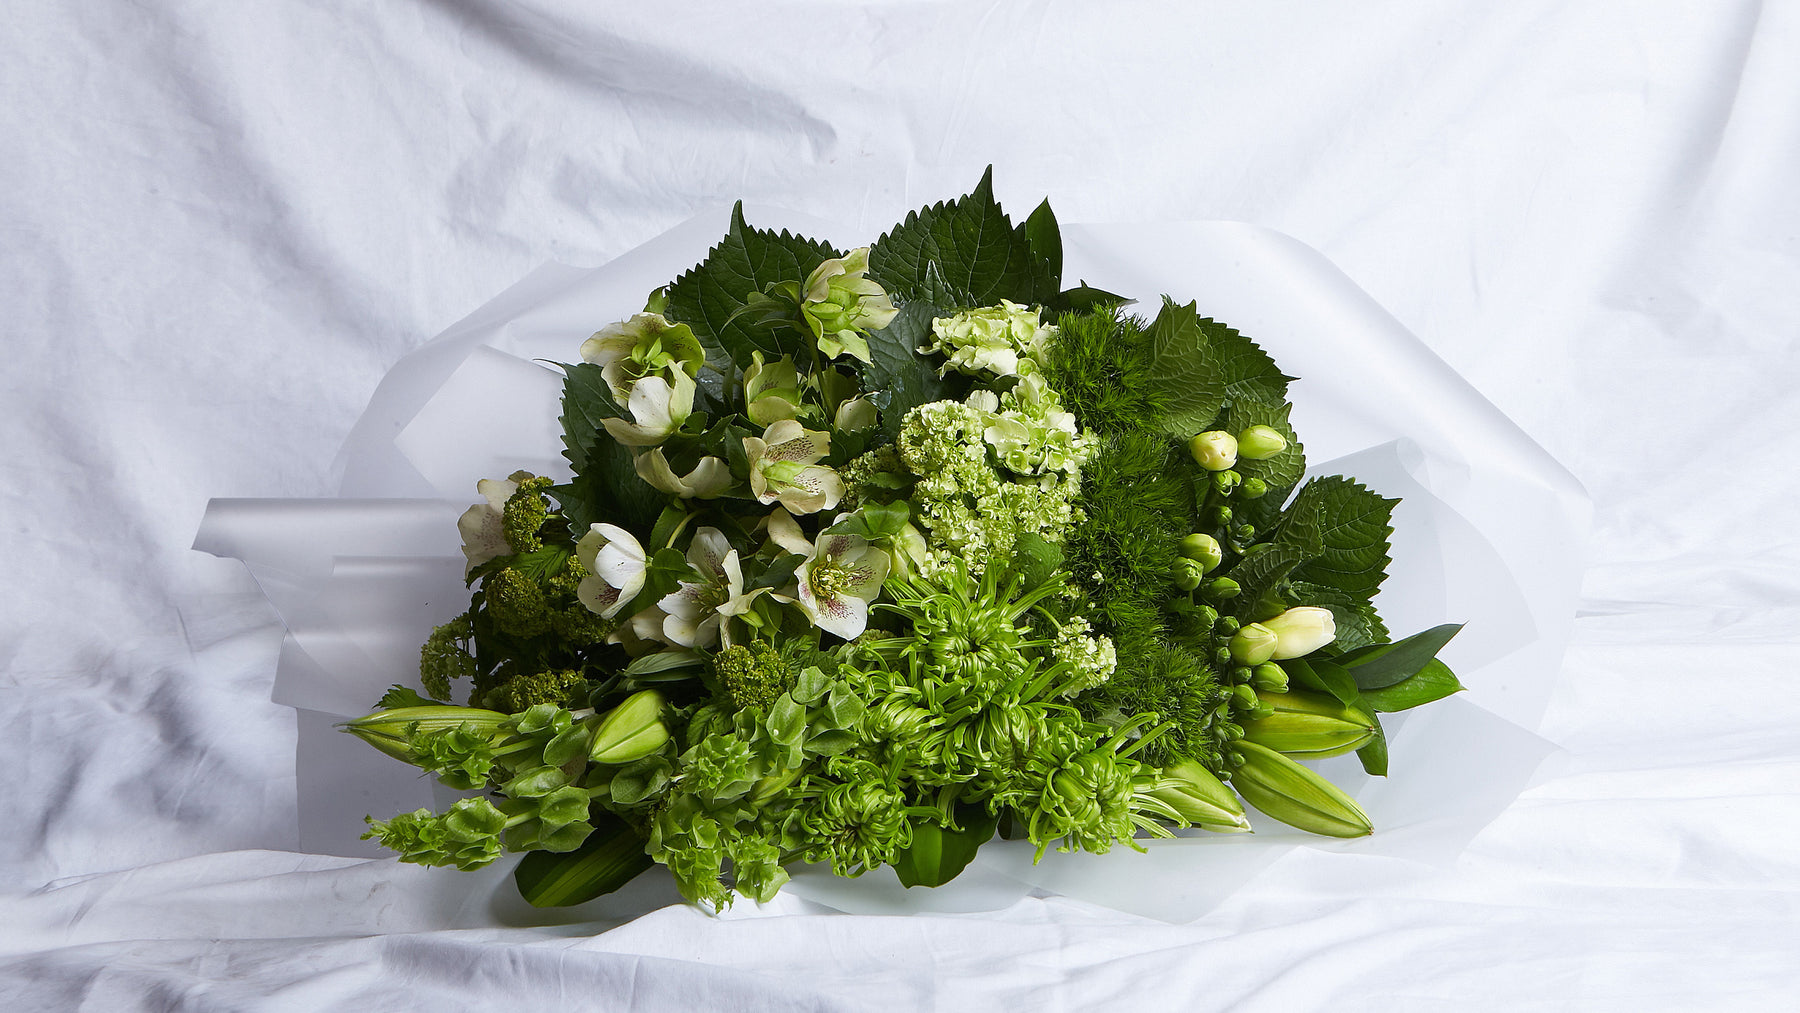 The Green Bouquet